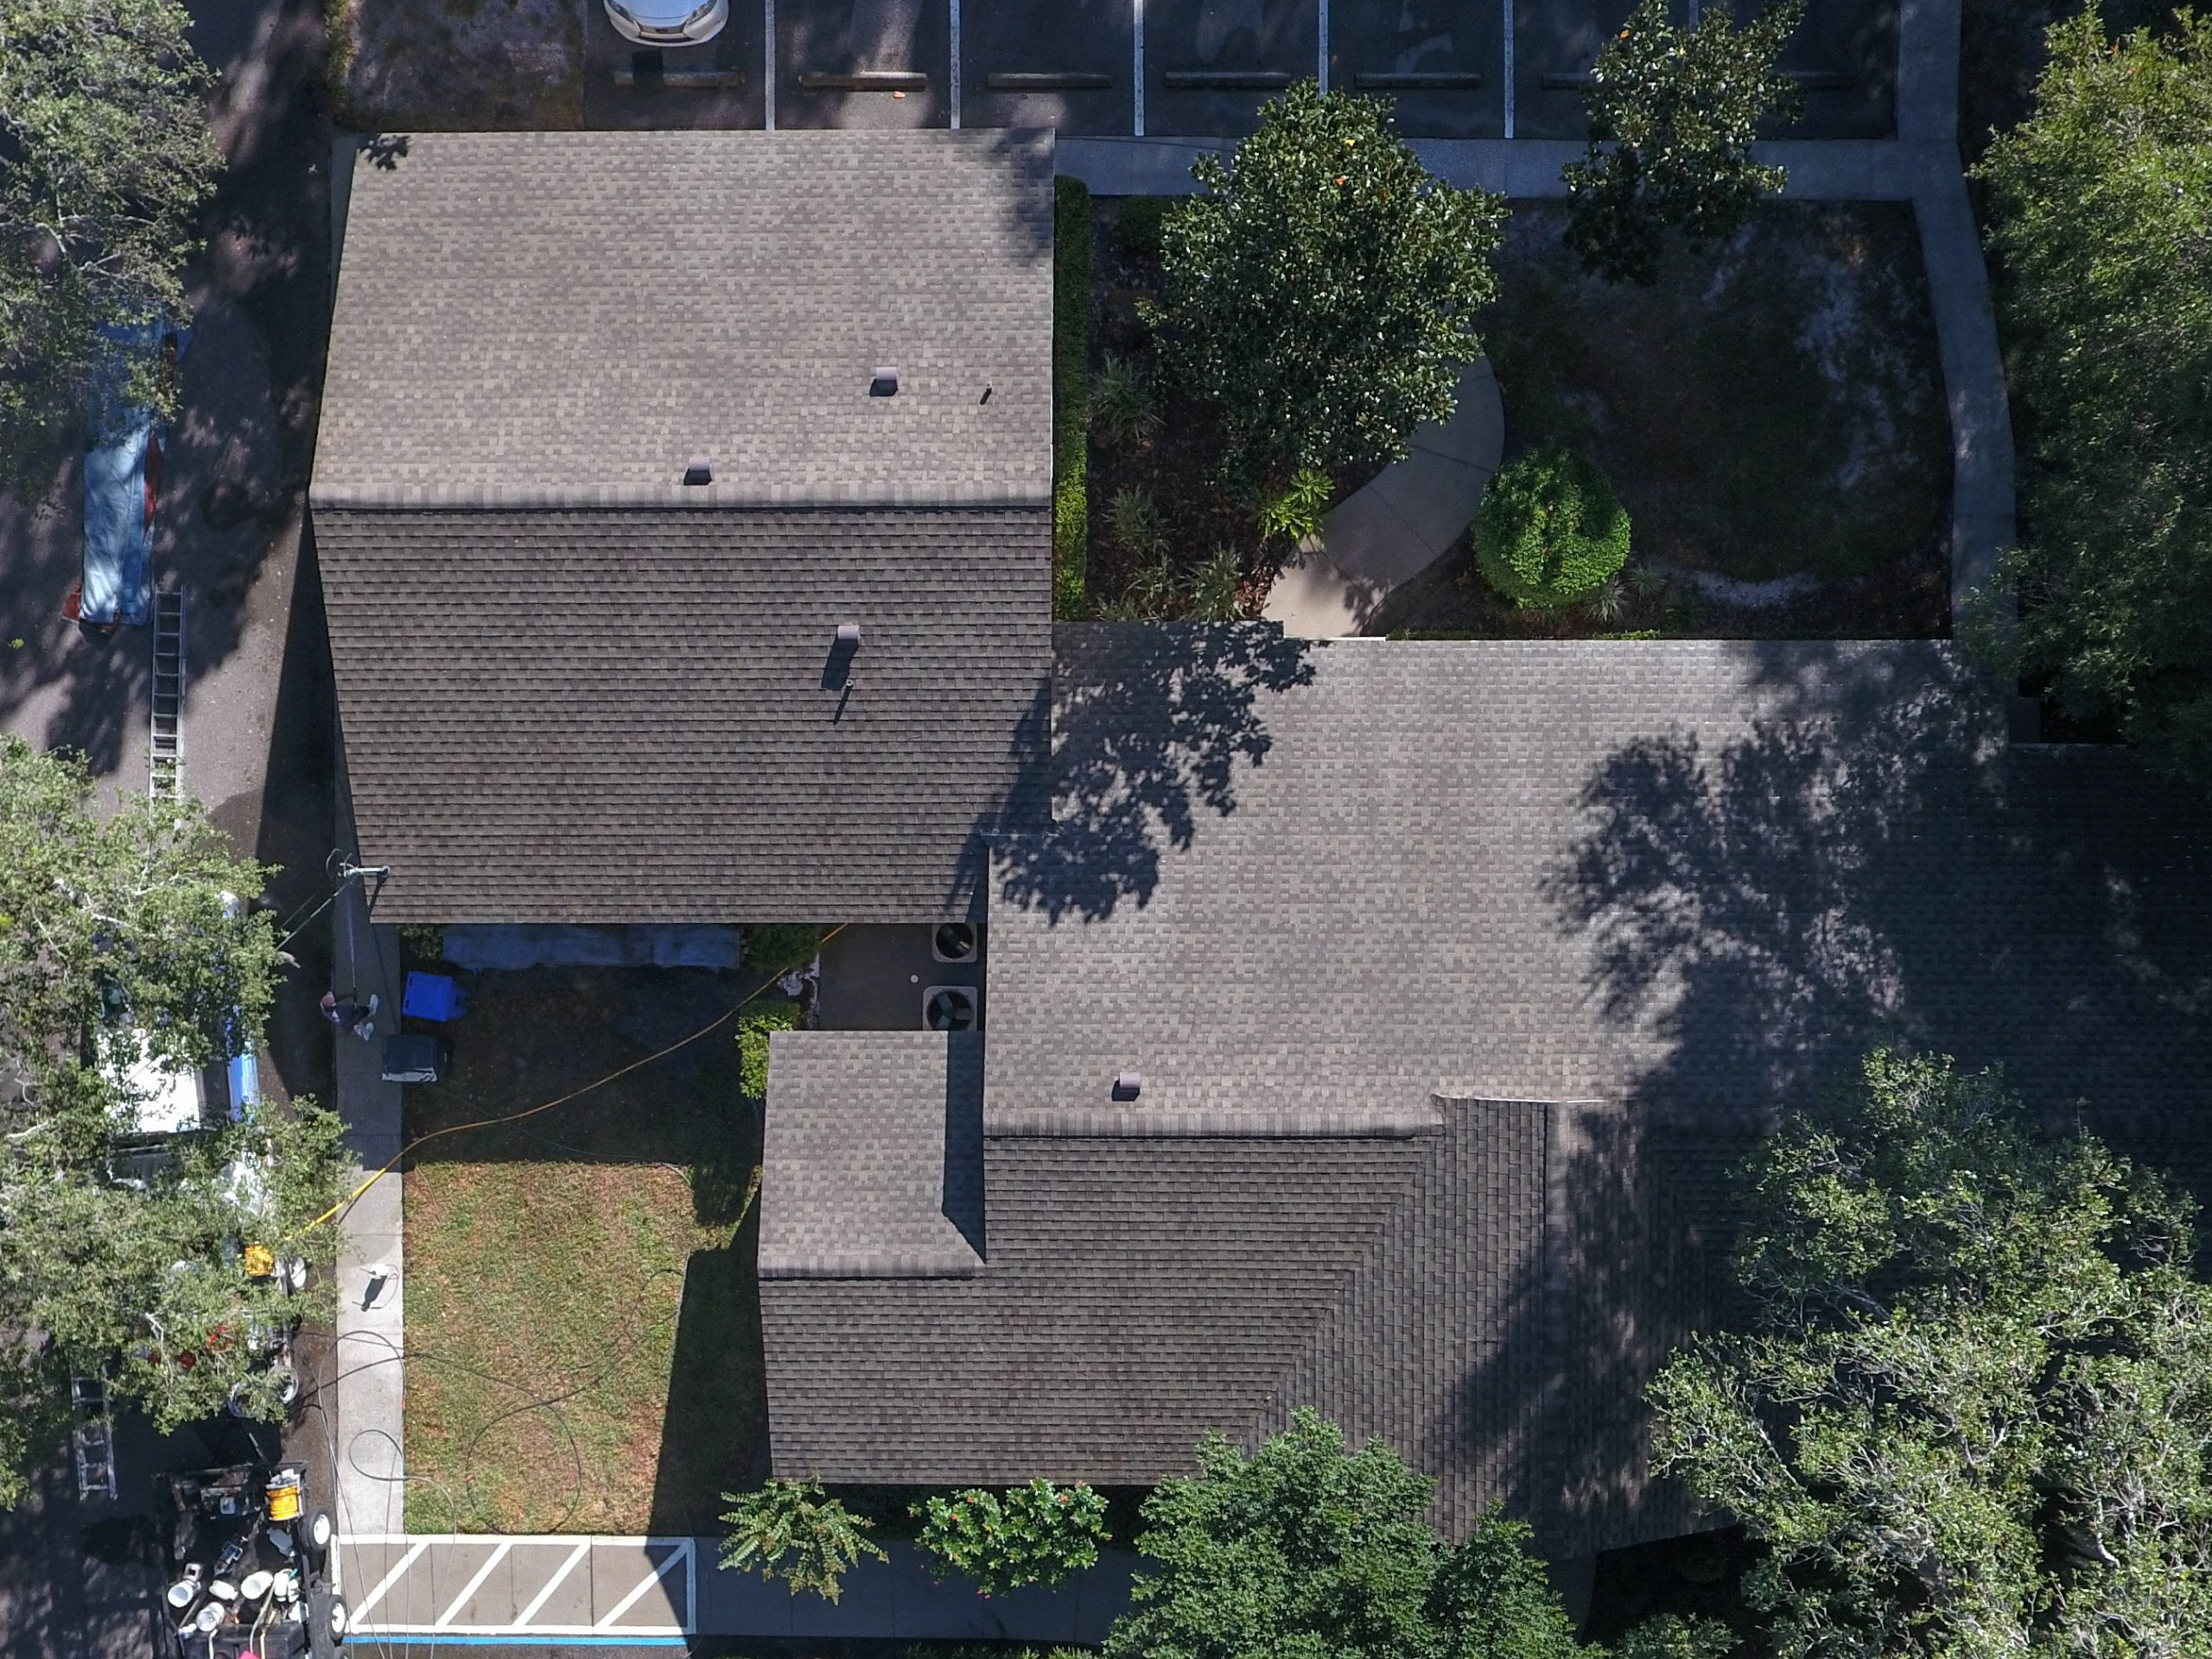 nonpressure roof cleaning tampa flnonpressure roof cleaning tampa florida